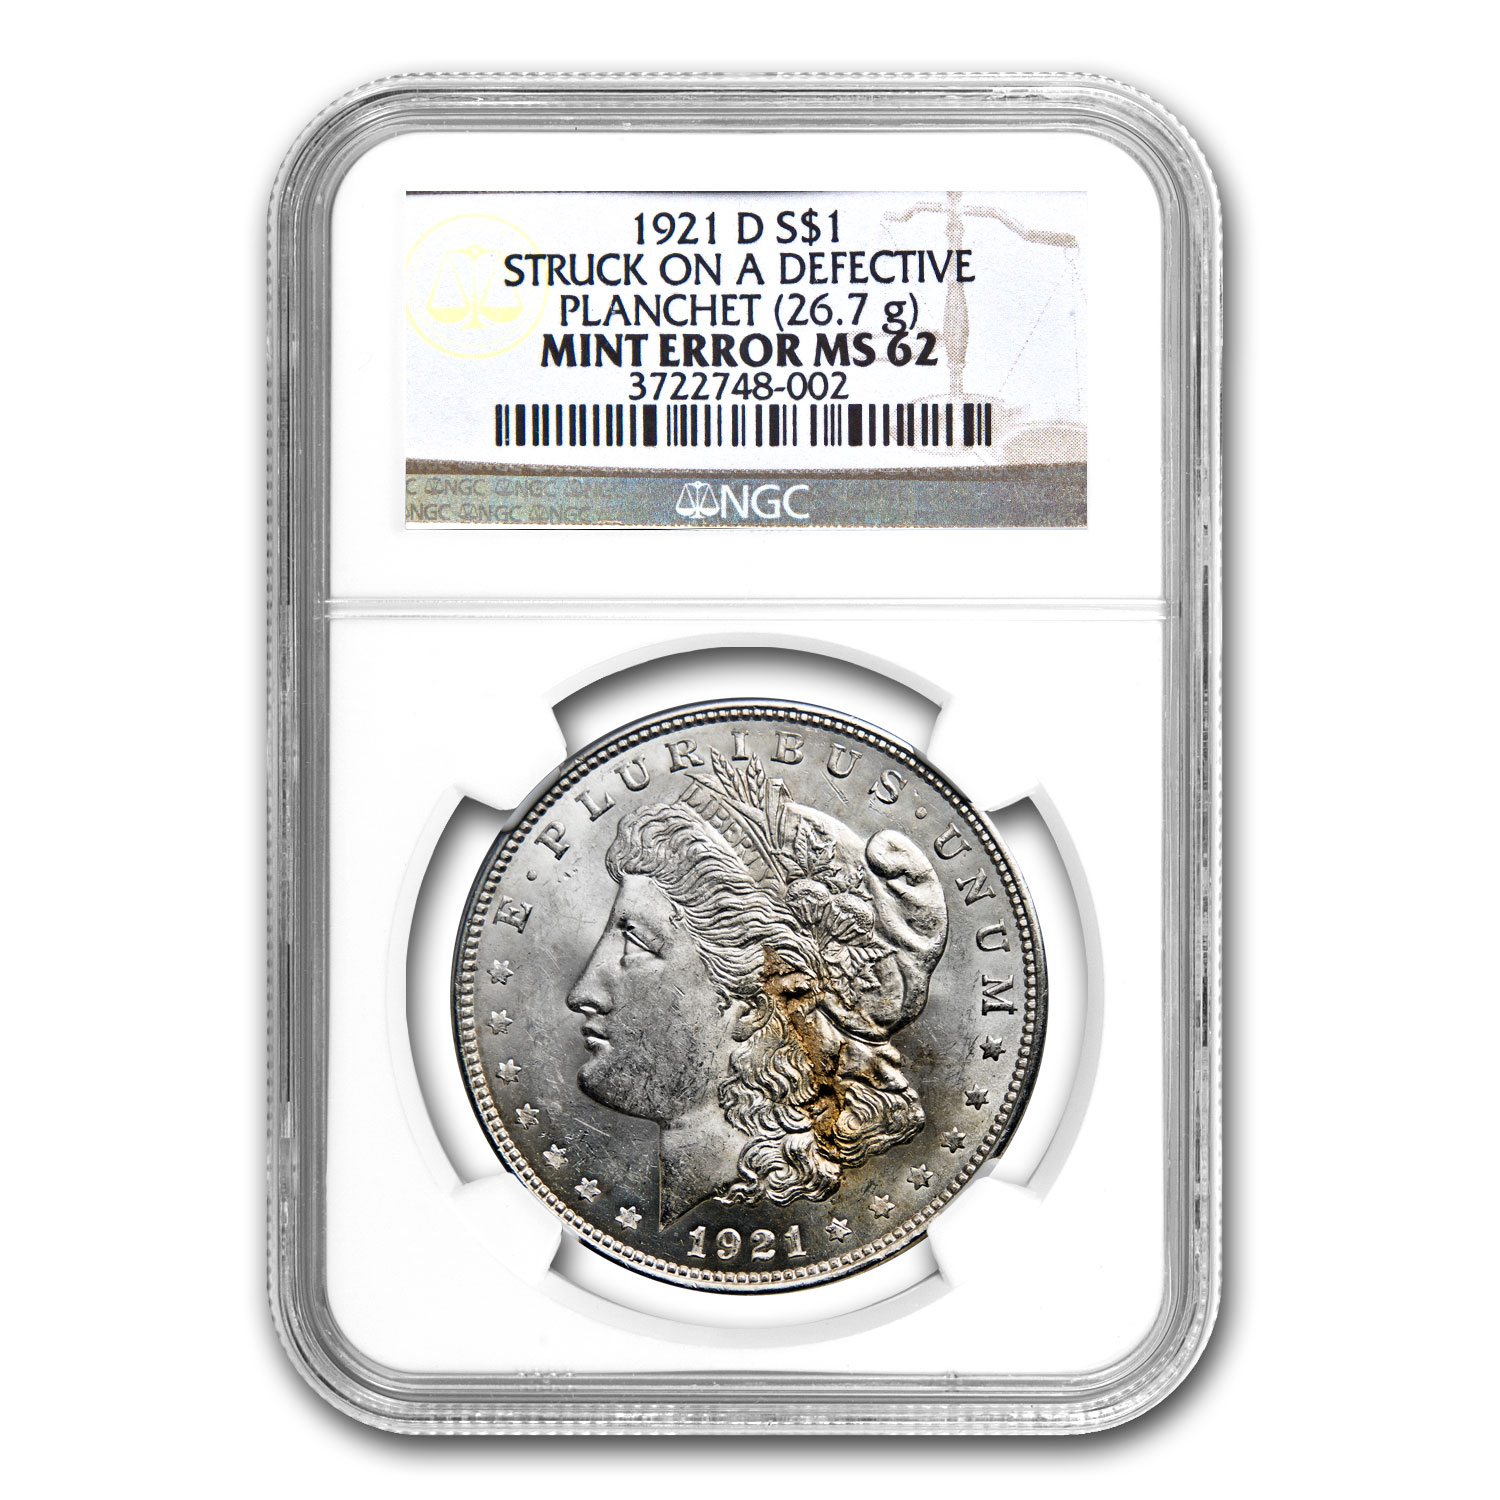 1921-D Morgan Dollar MS-62 NGC Defective Planchet Mint Error